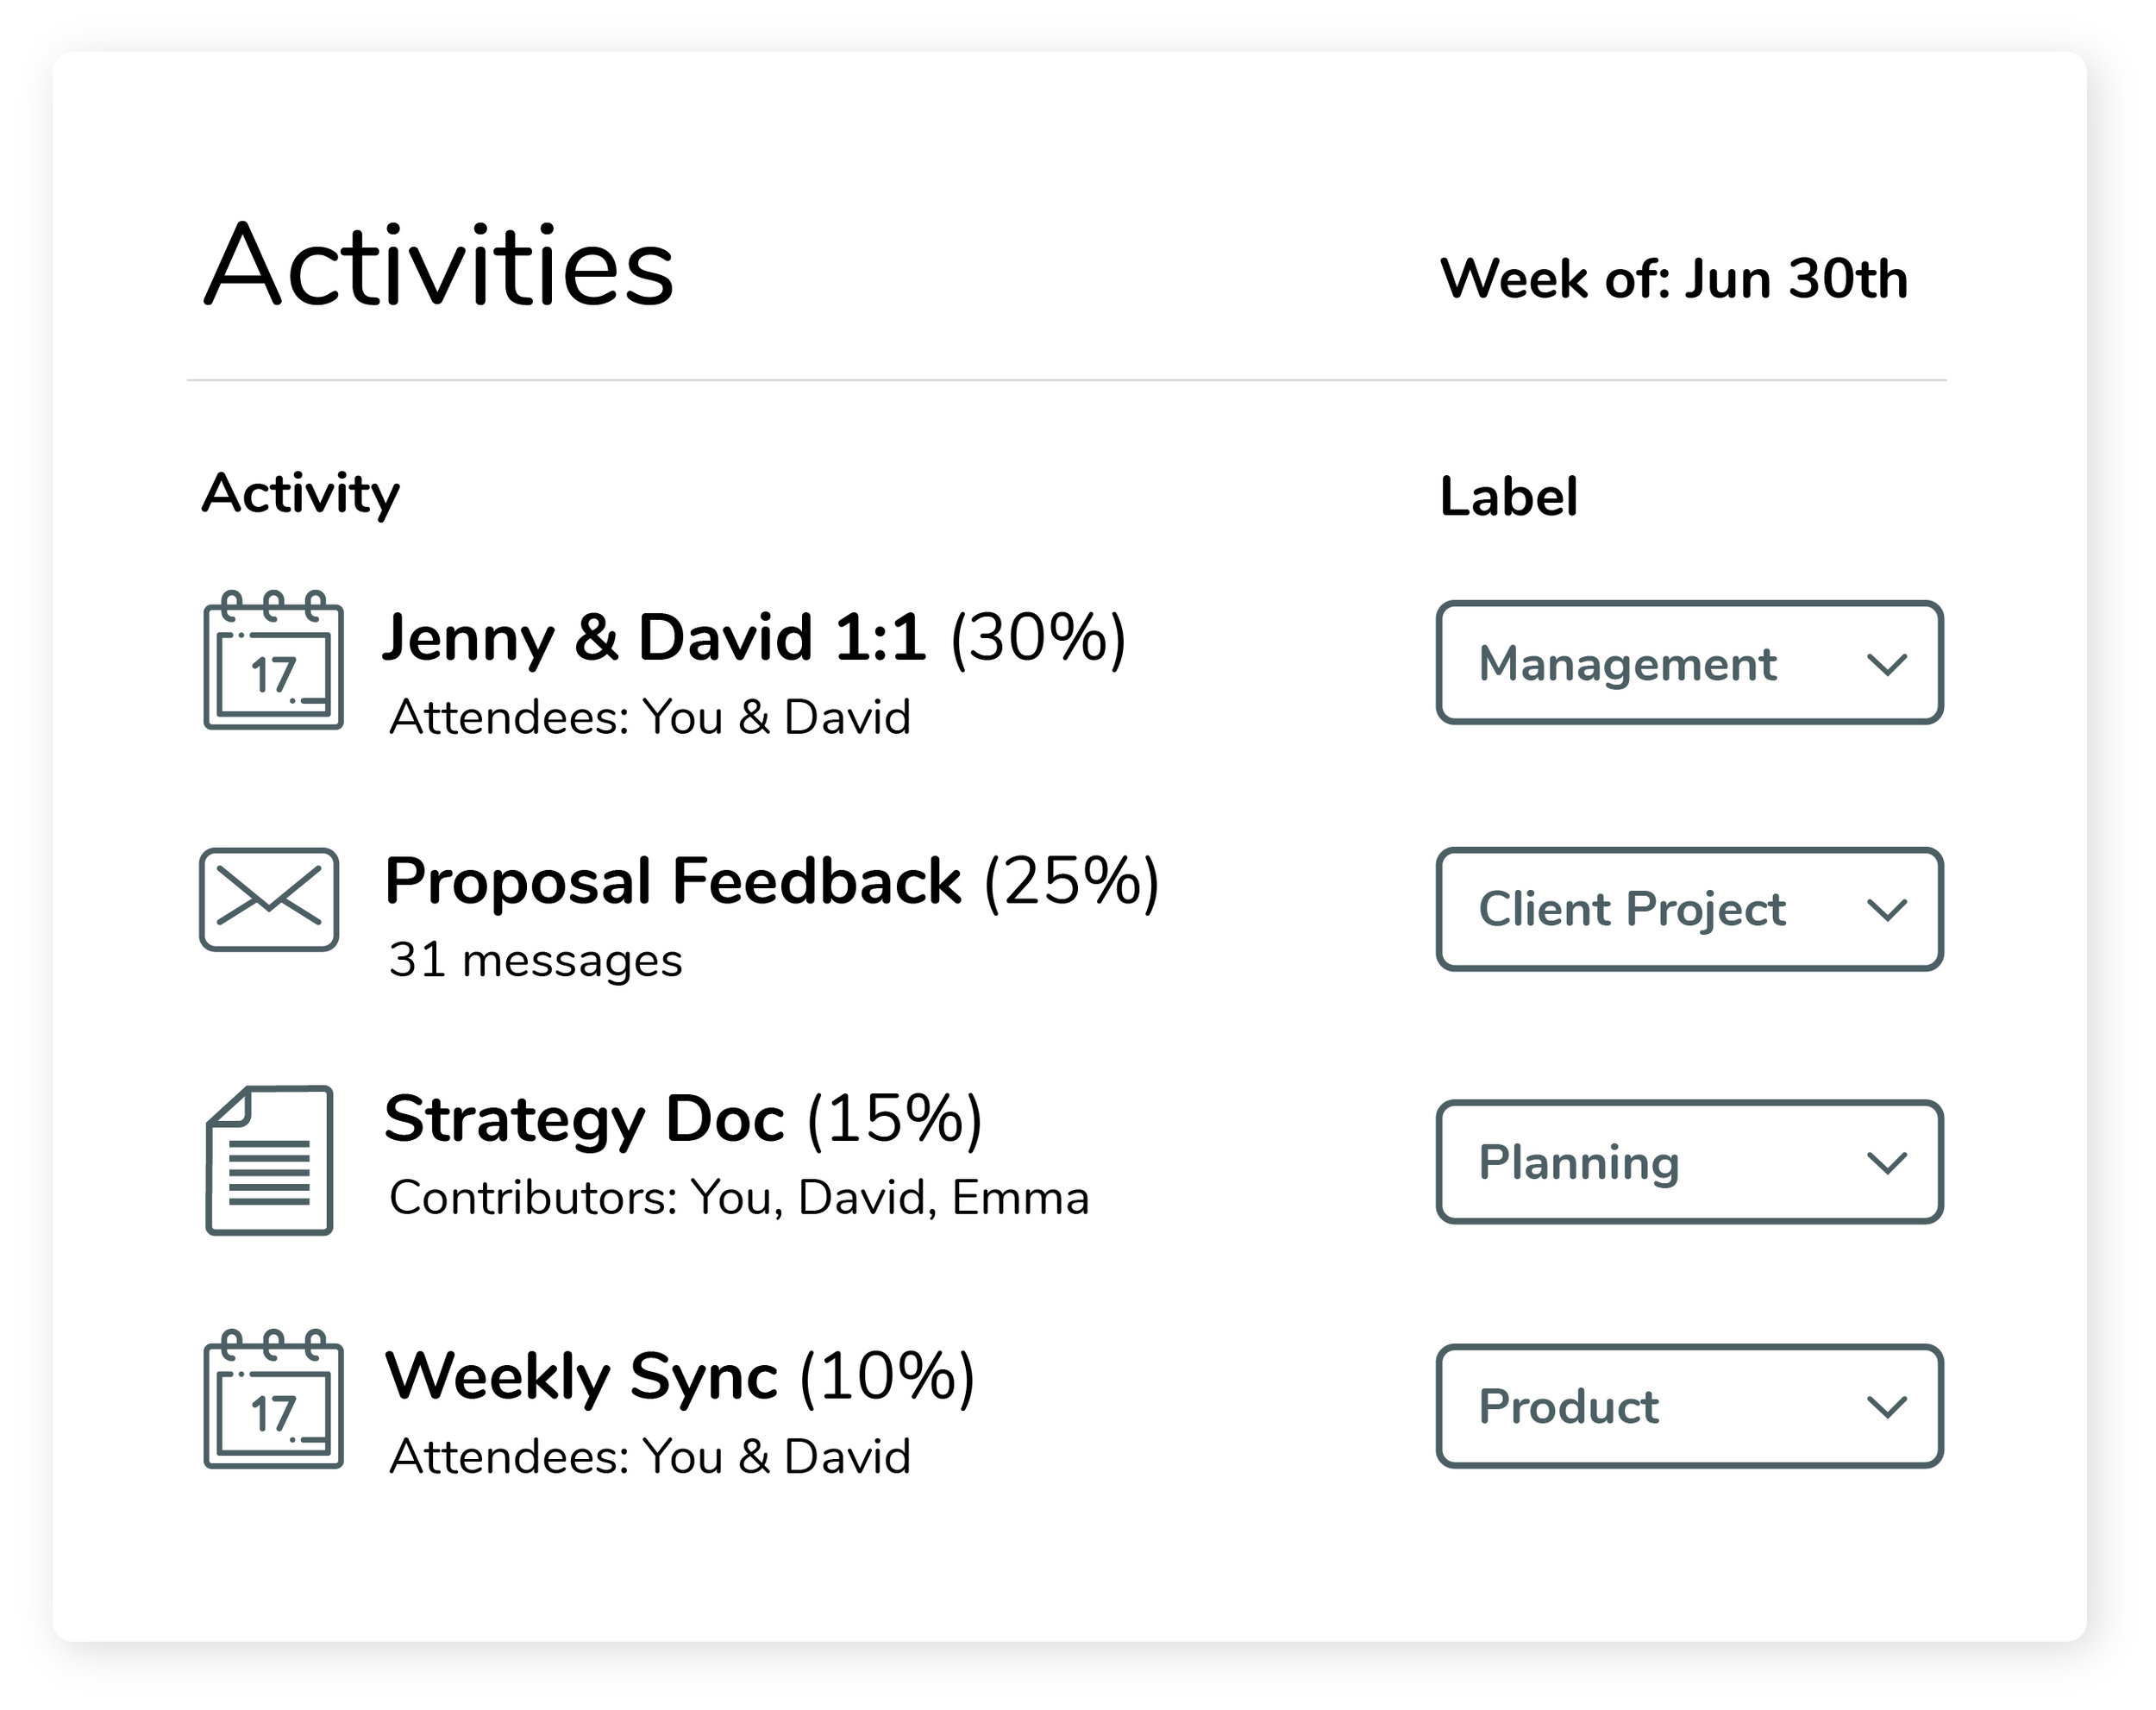 Quick, easy, and automatic - WorkPatterns connects to the apps you're already using and automatically categorizes activities into the buckets you care about. Surface data you've always wondered about and track your progress going forward.